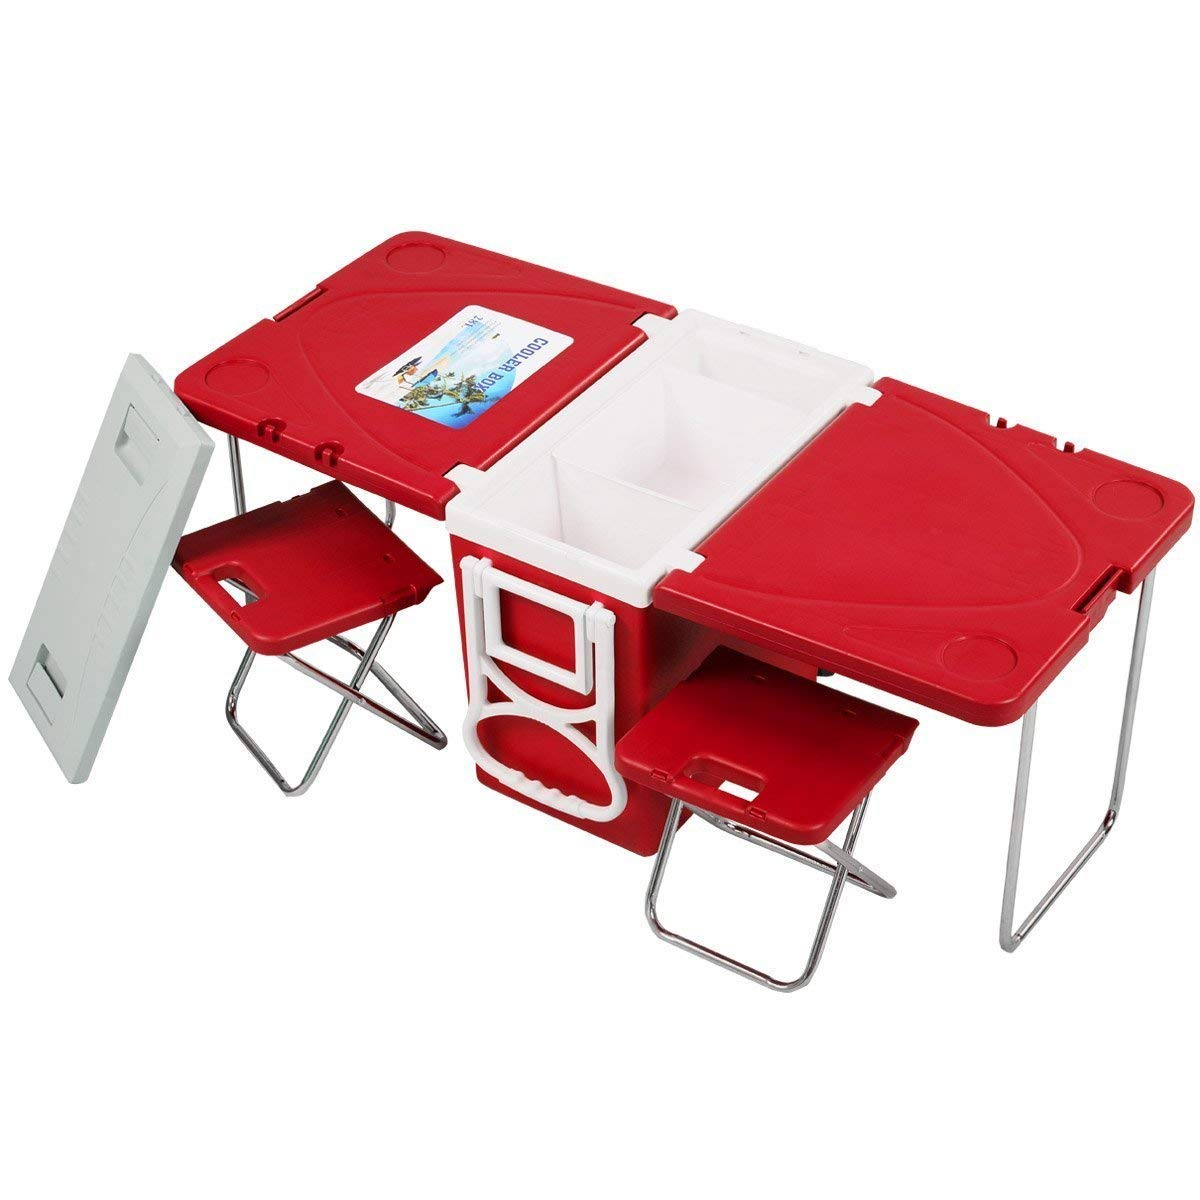 Giantex Rolling Cooler Picnic Table Multi Function for Picnic Fishing Portable Storage Food Beverage Included Foldable Table W/ Two Chairs Camping Trip Cooler Children Size (Red) by Giantex